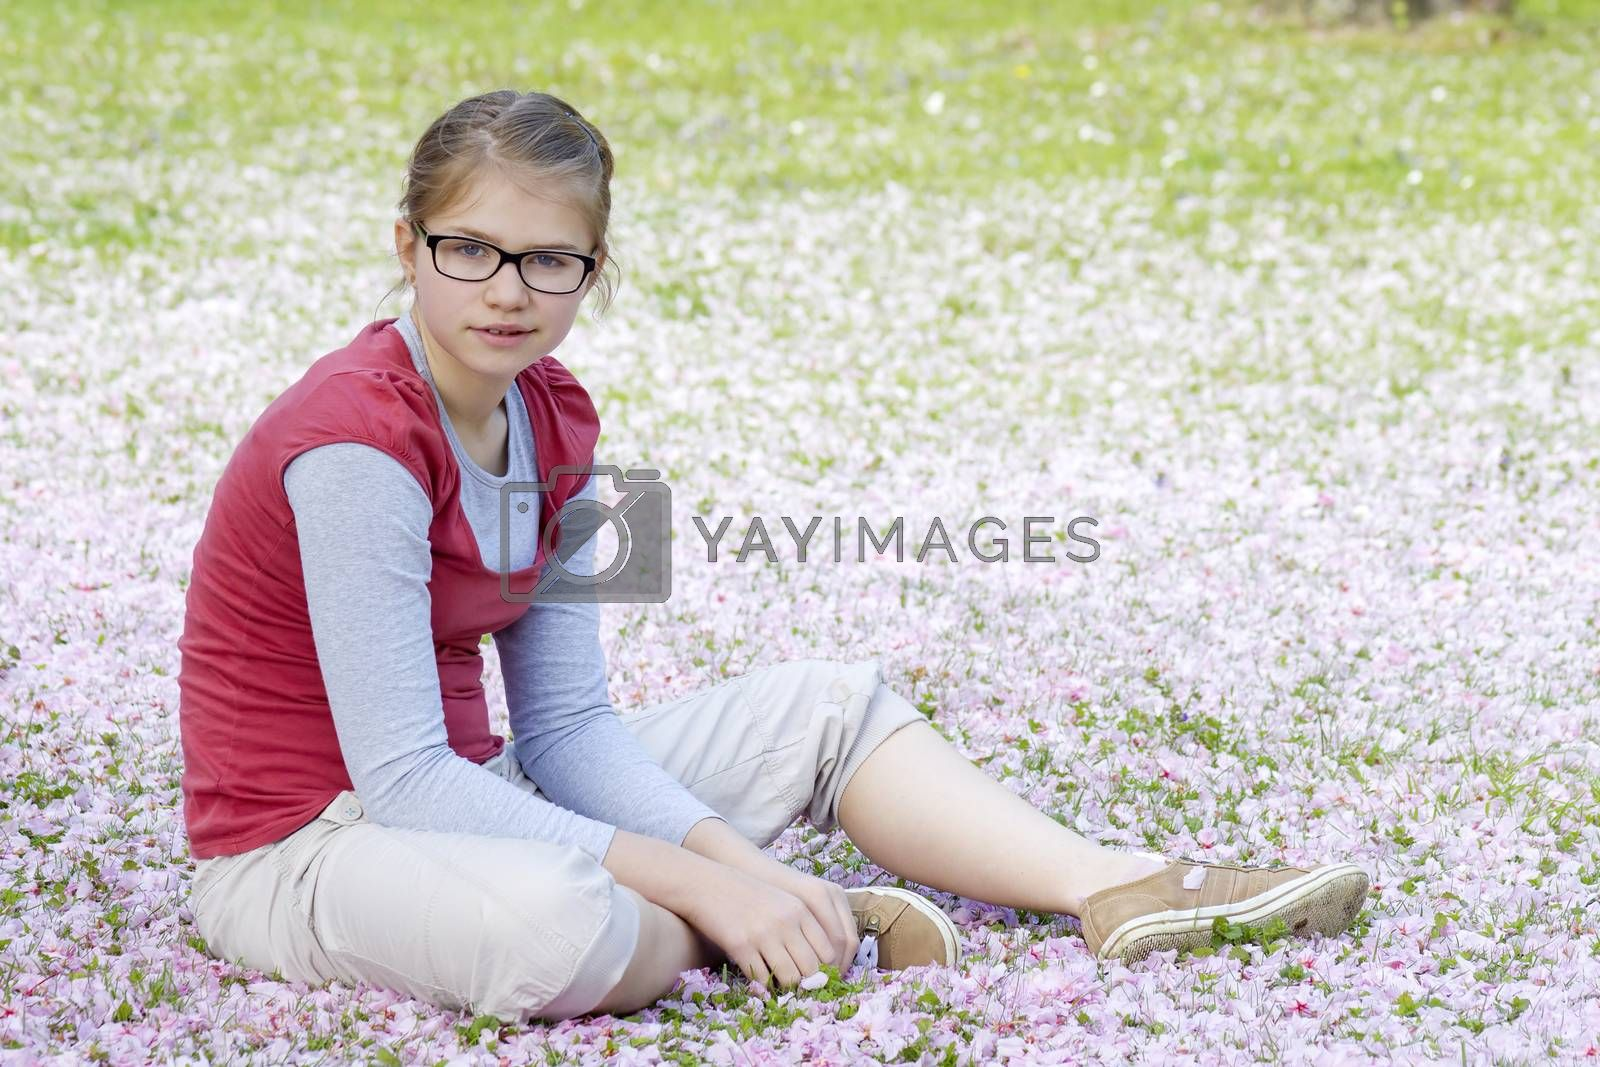 Young girl resting in park in spring day by miradrozdowski